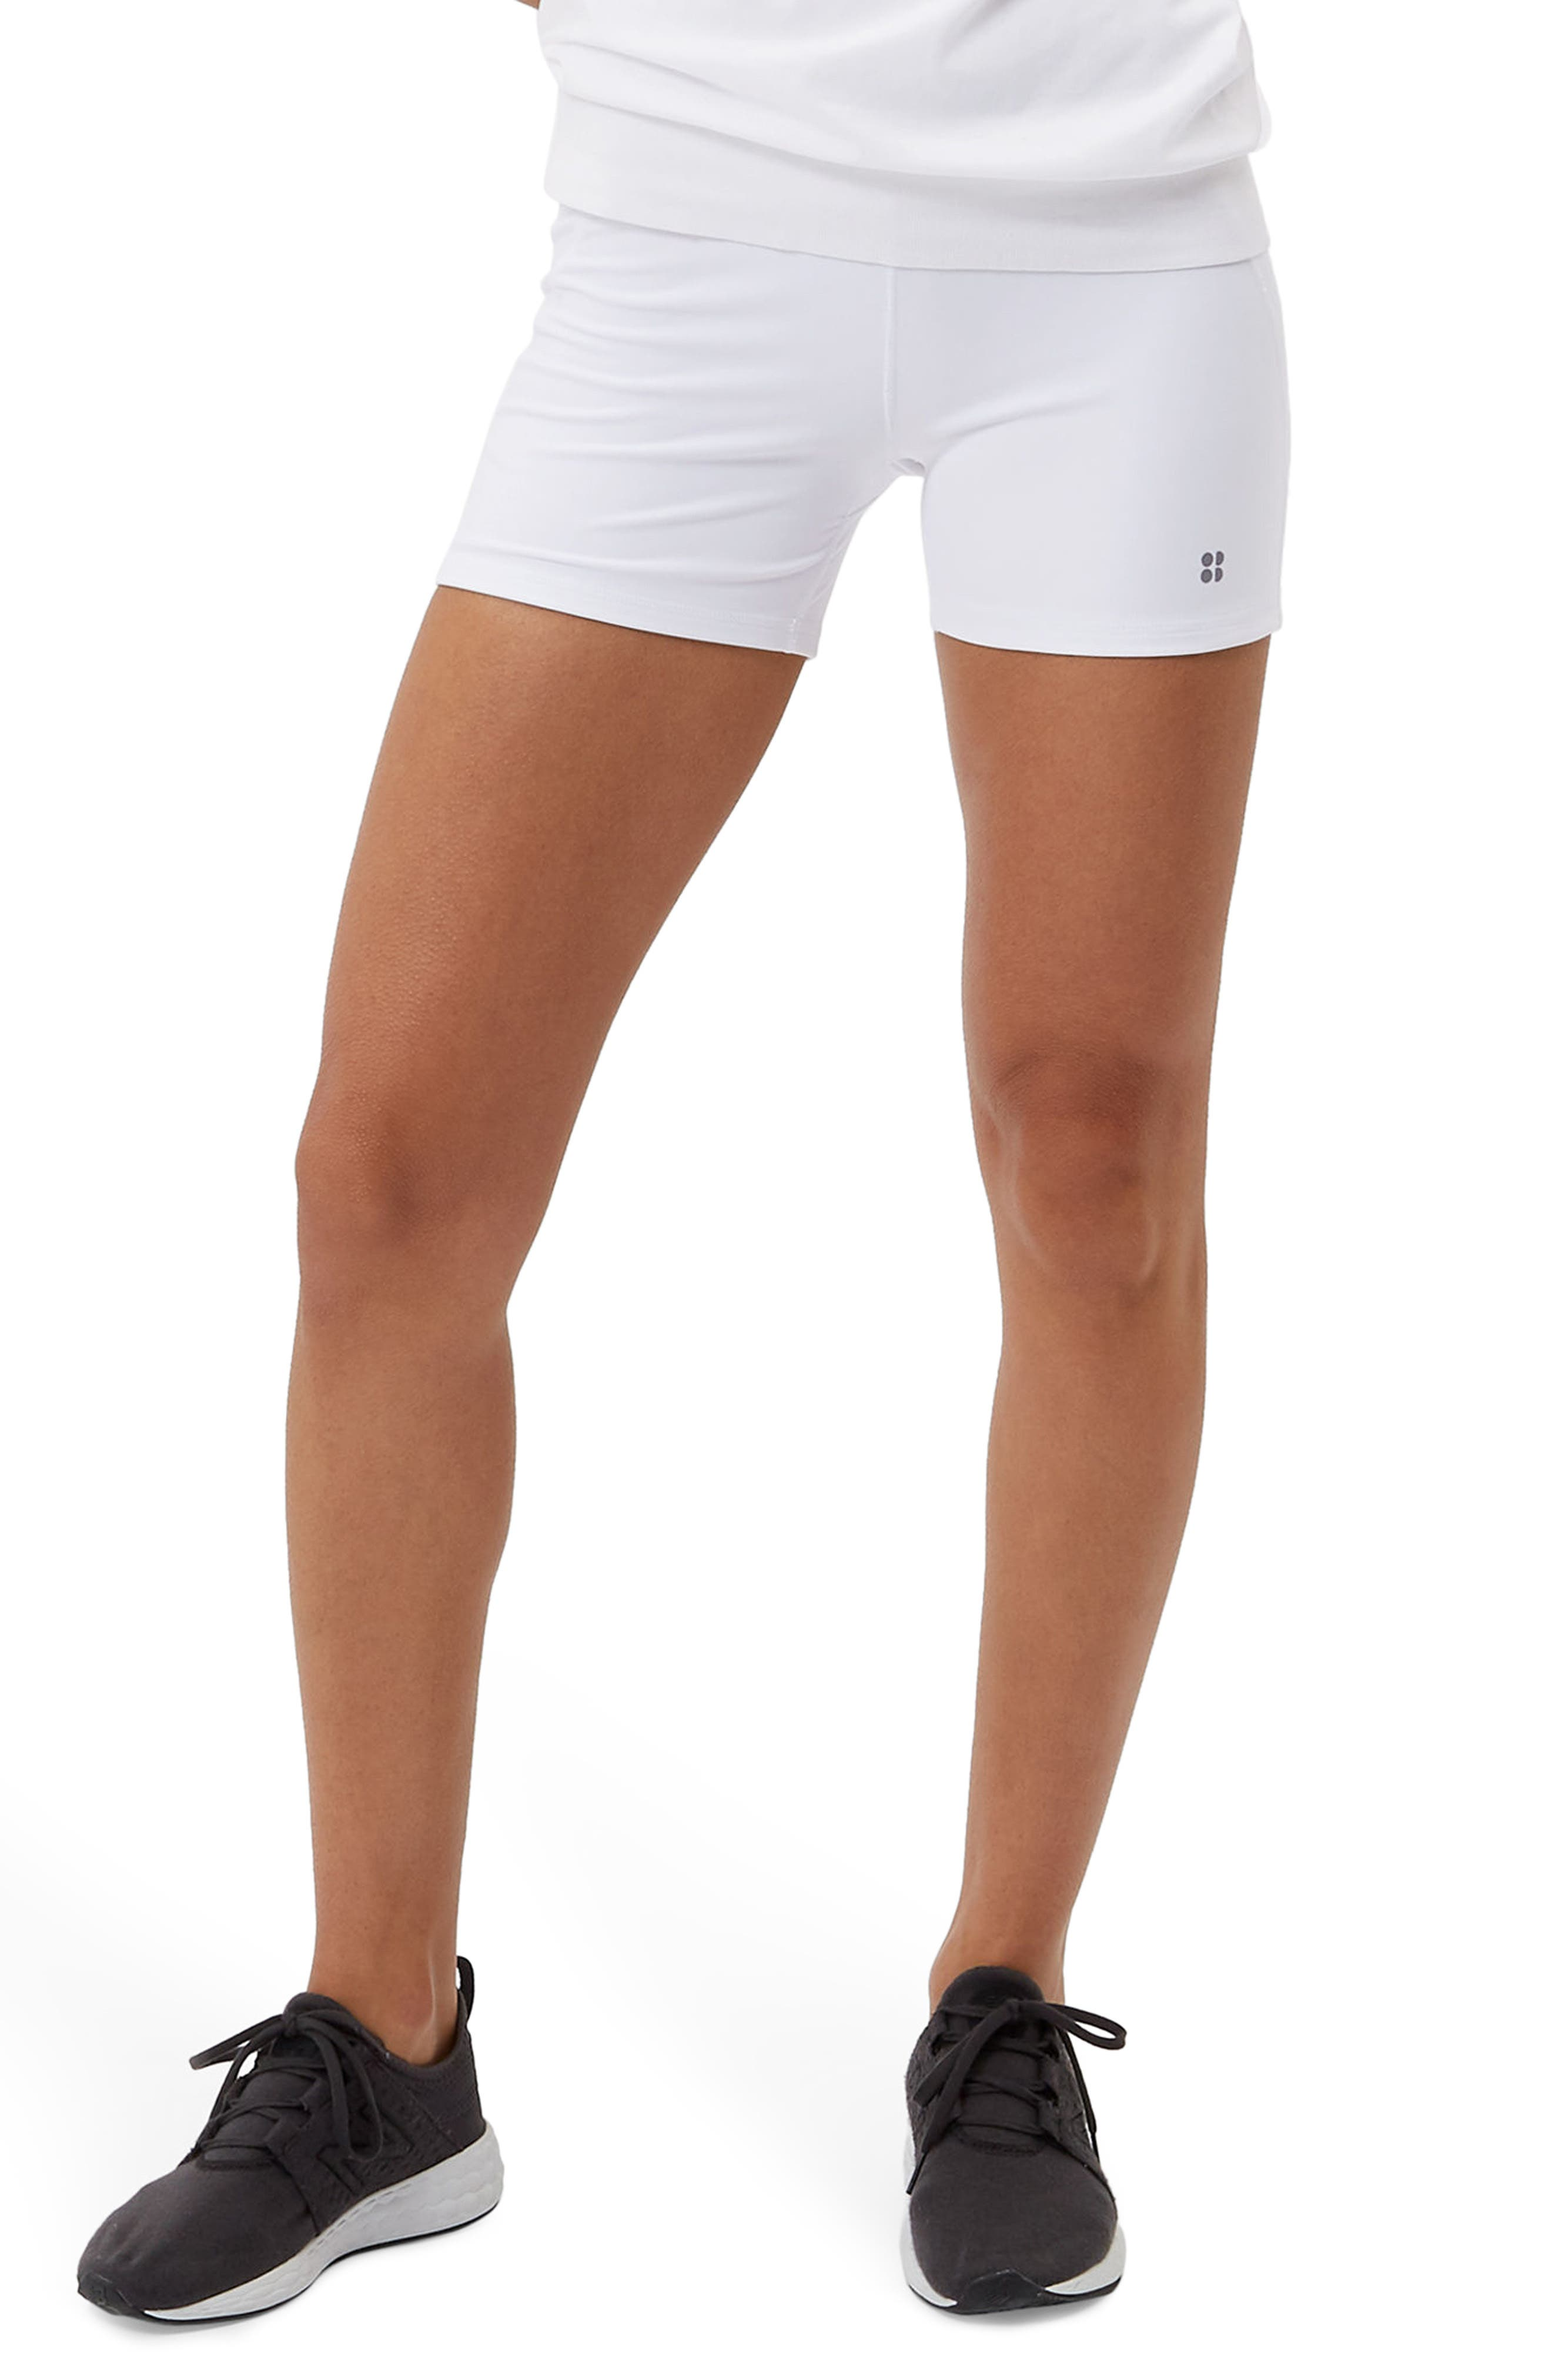 Power Shorts,                         Main,                         color, White